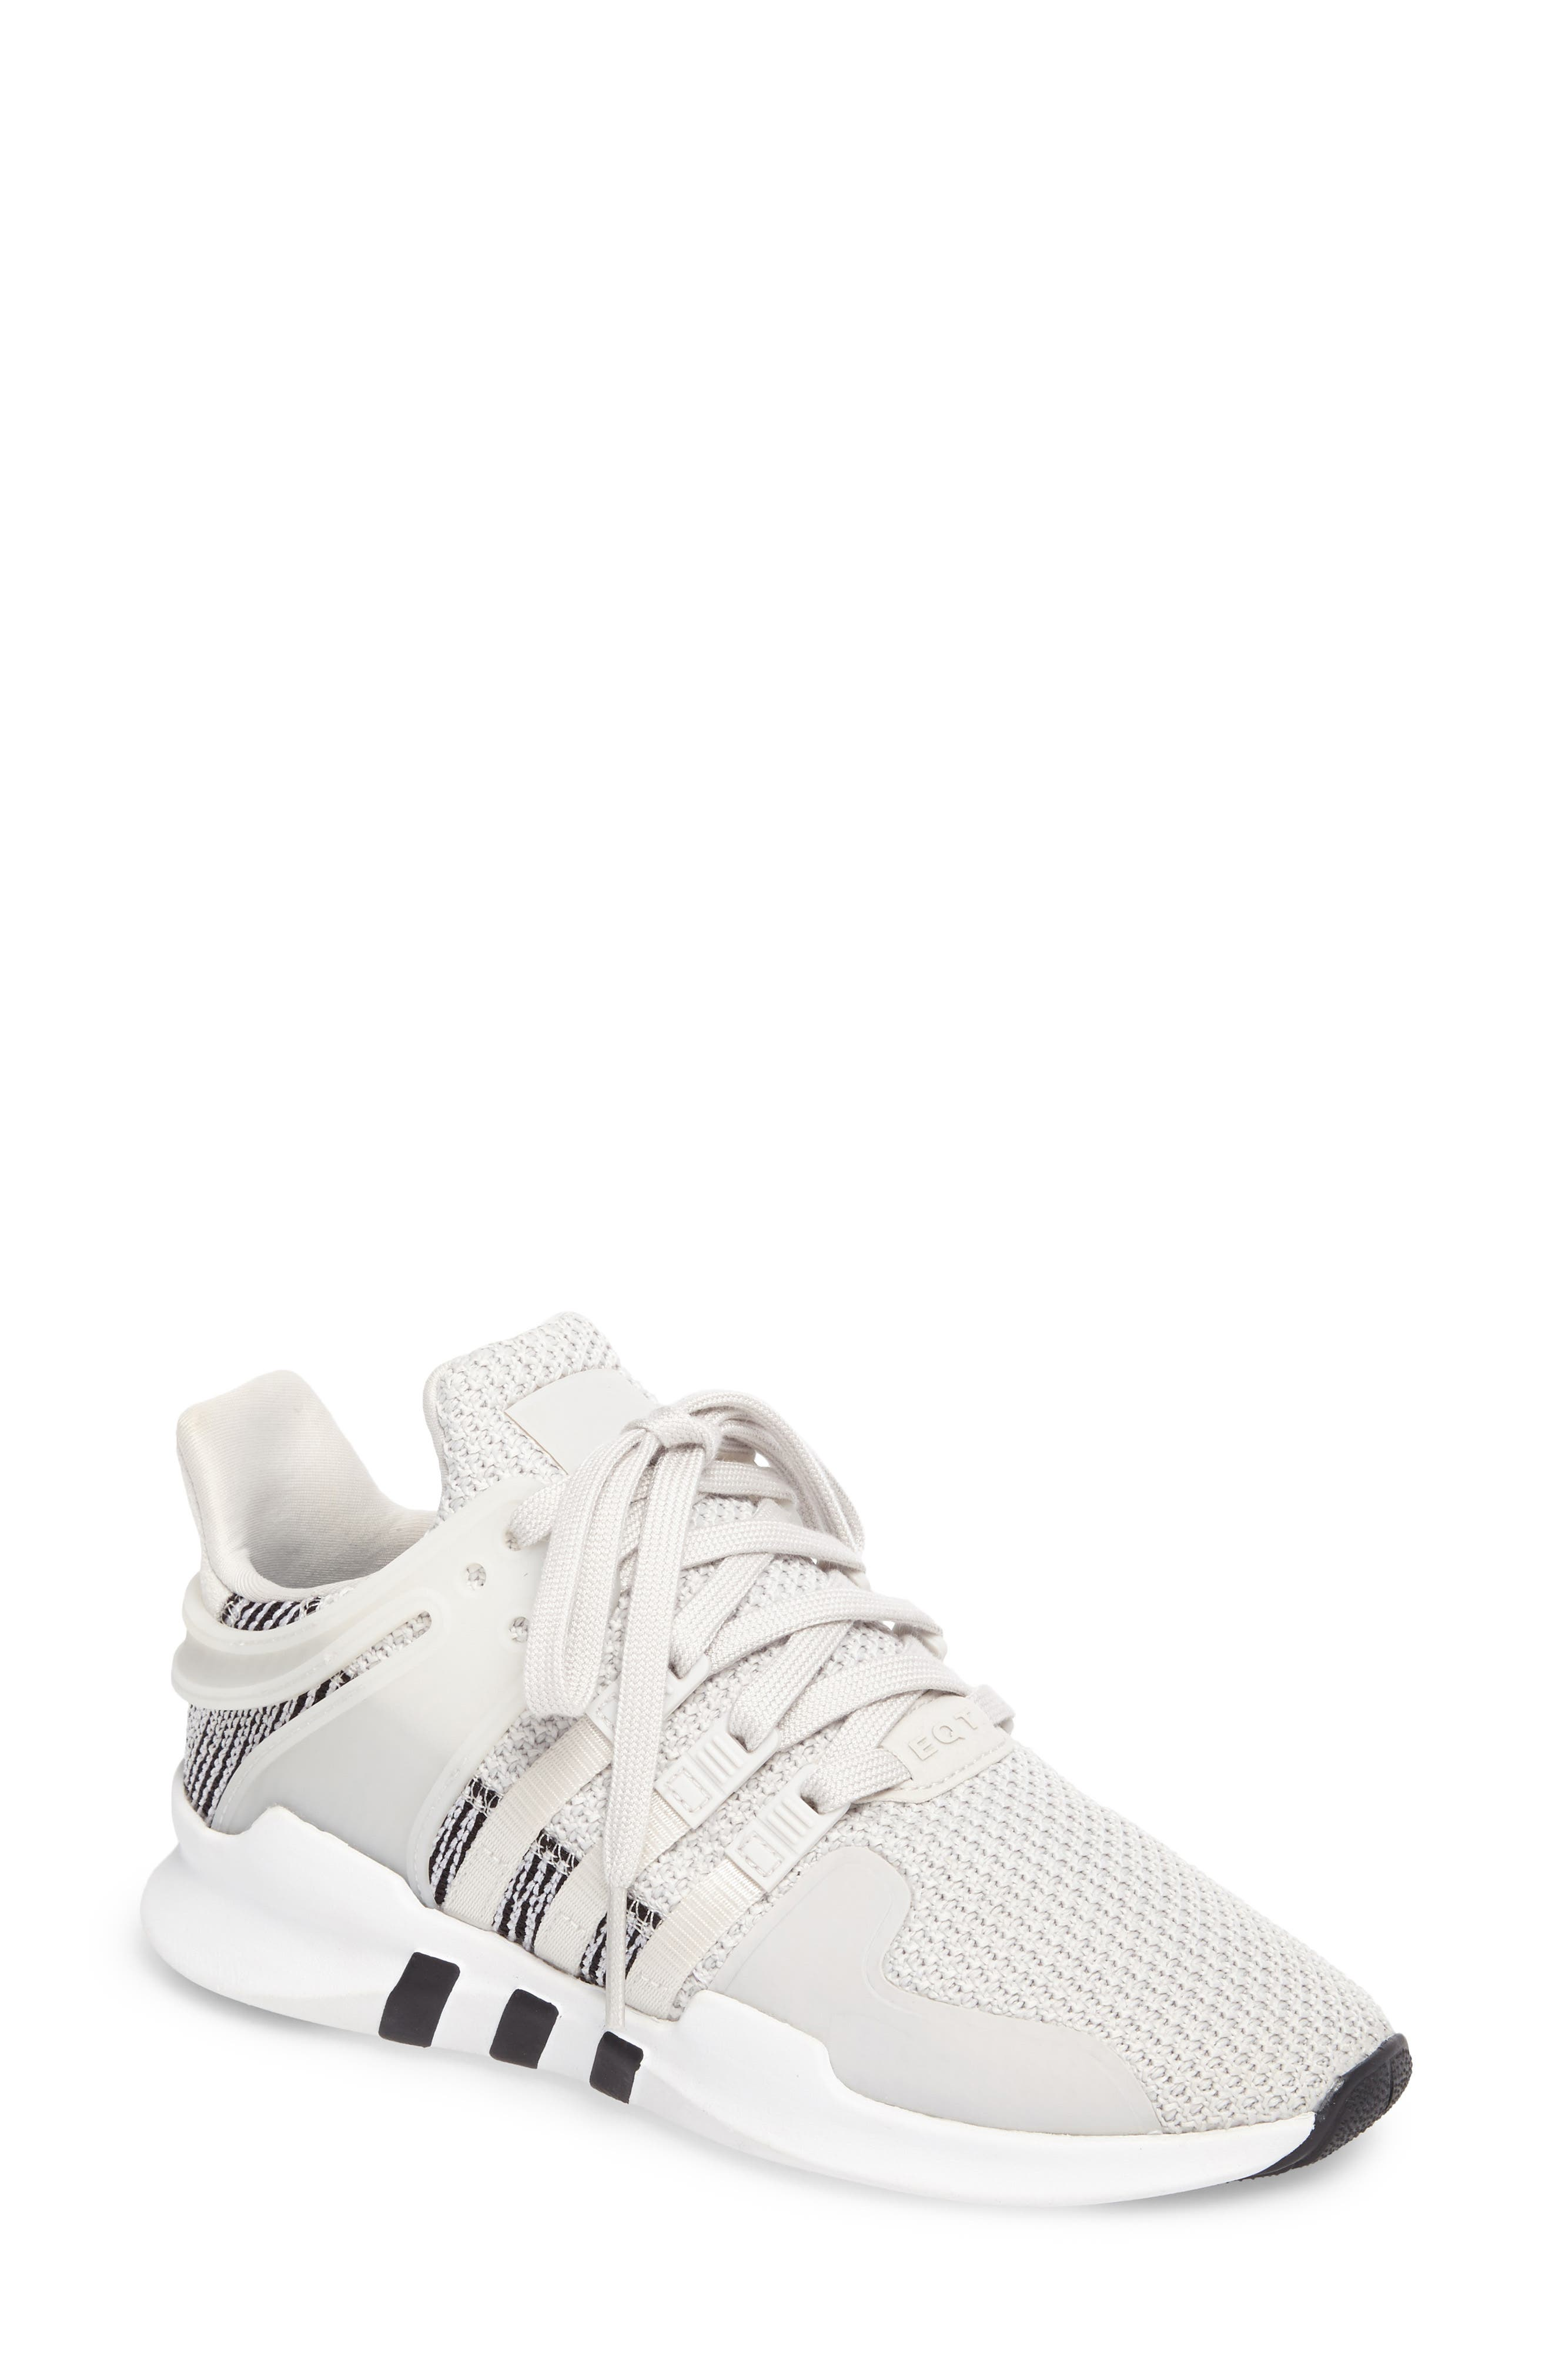 Alternate Image 1 Selected - adidas EQT Support Adv Sneaker (Women)